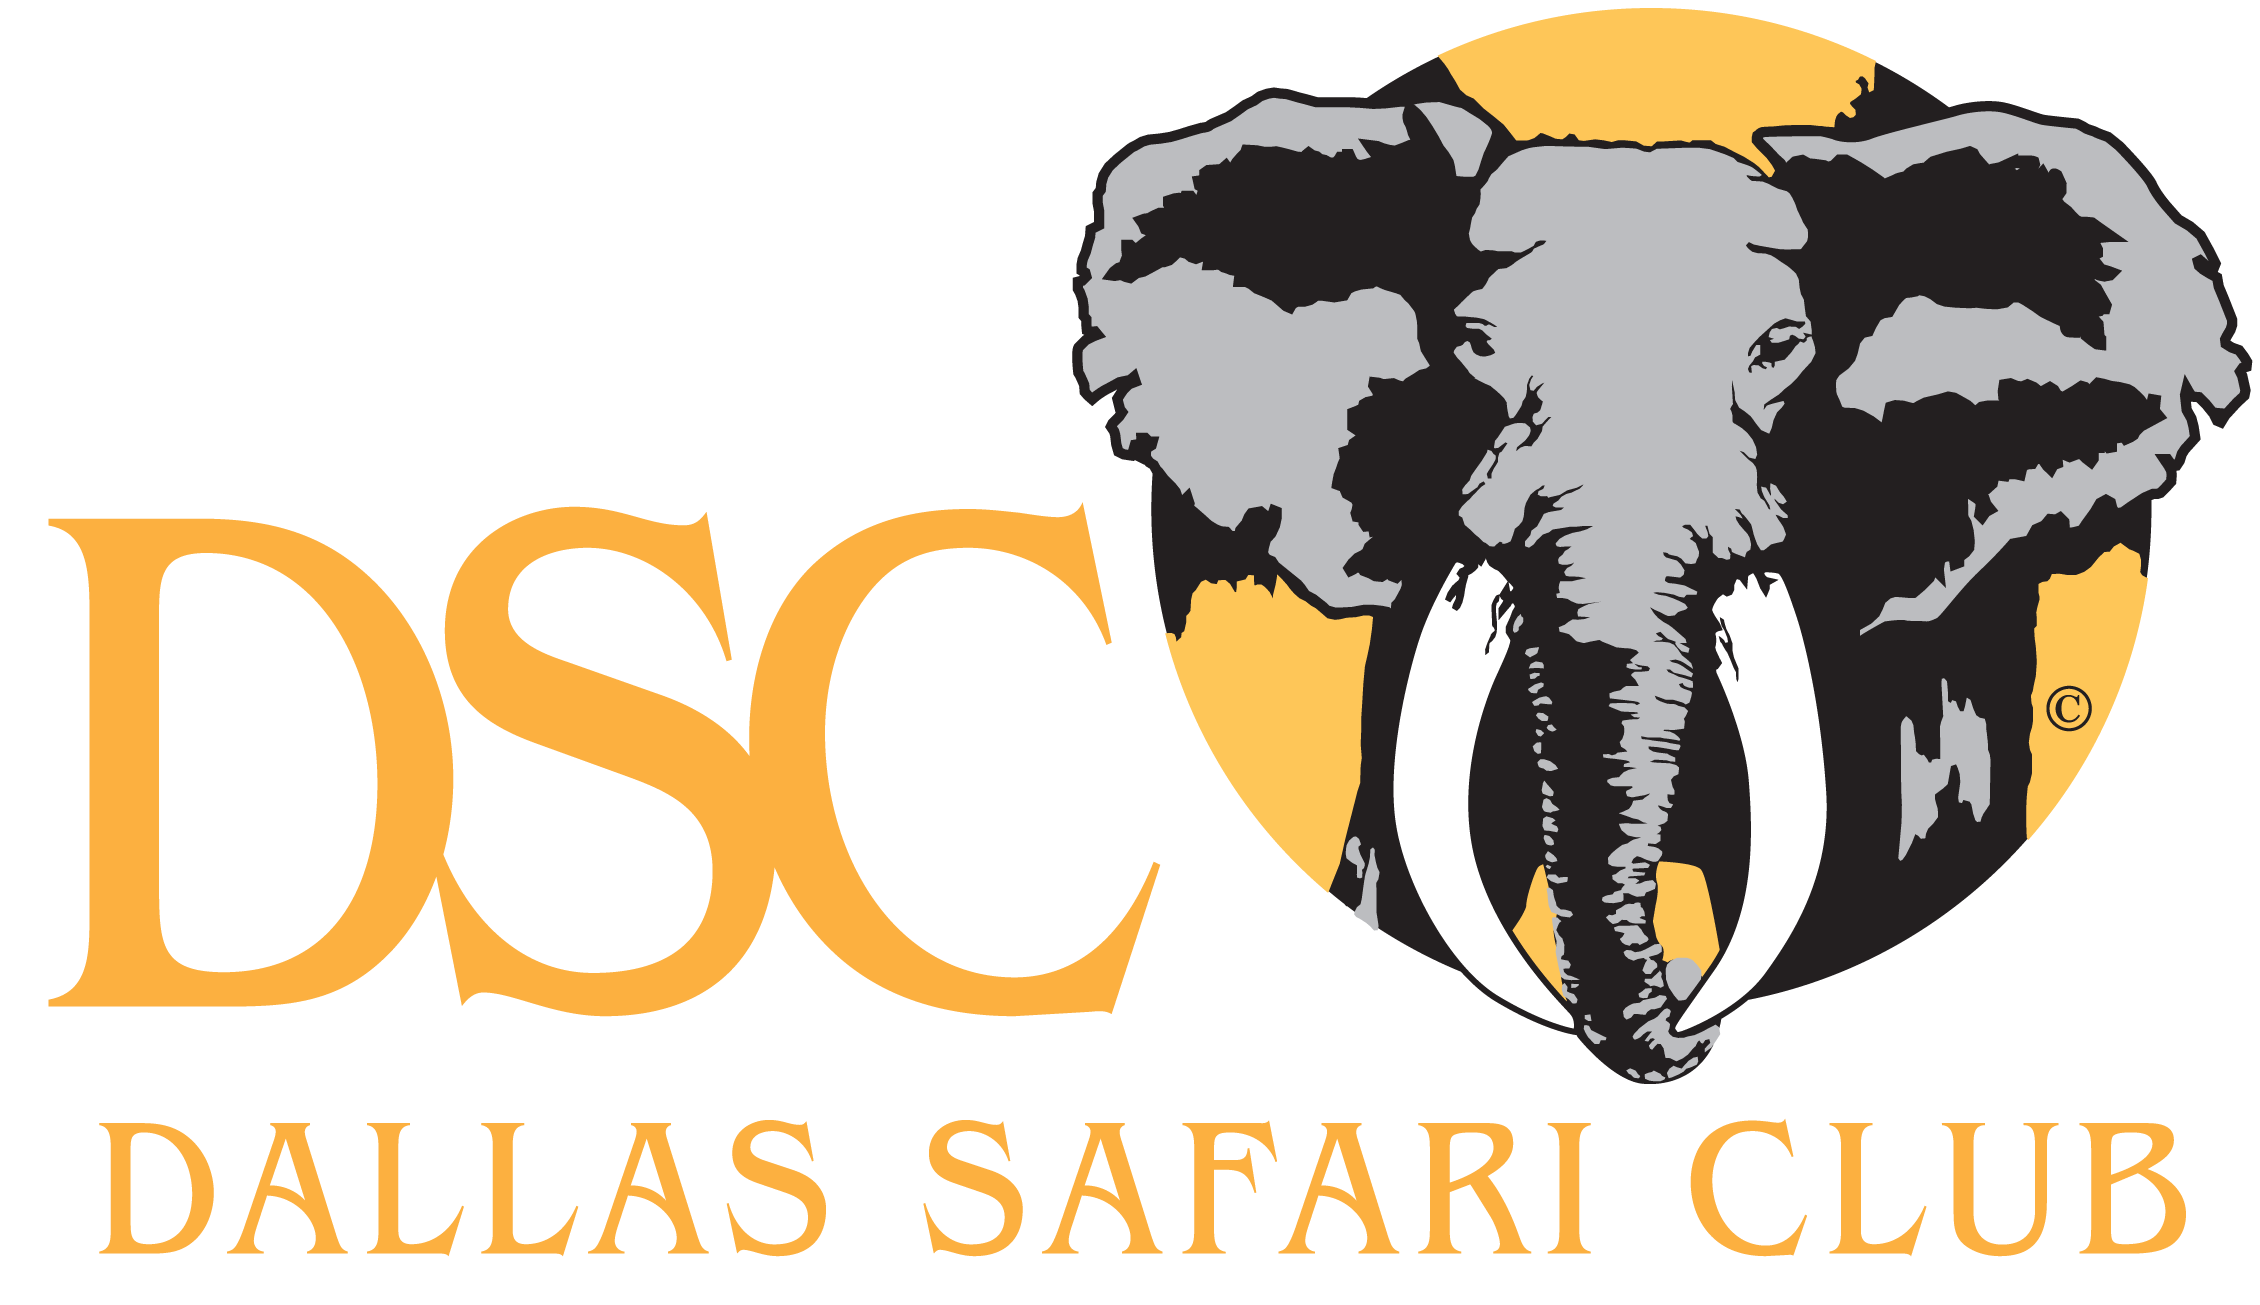 Dallas Safari Club logo